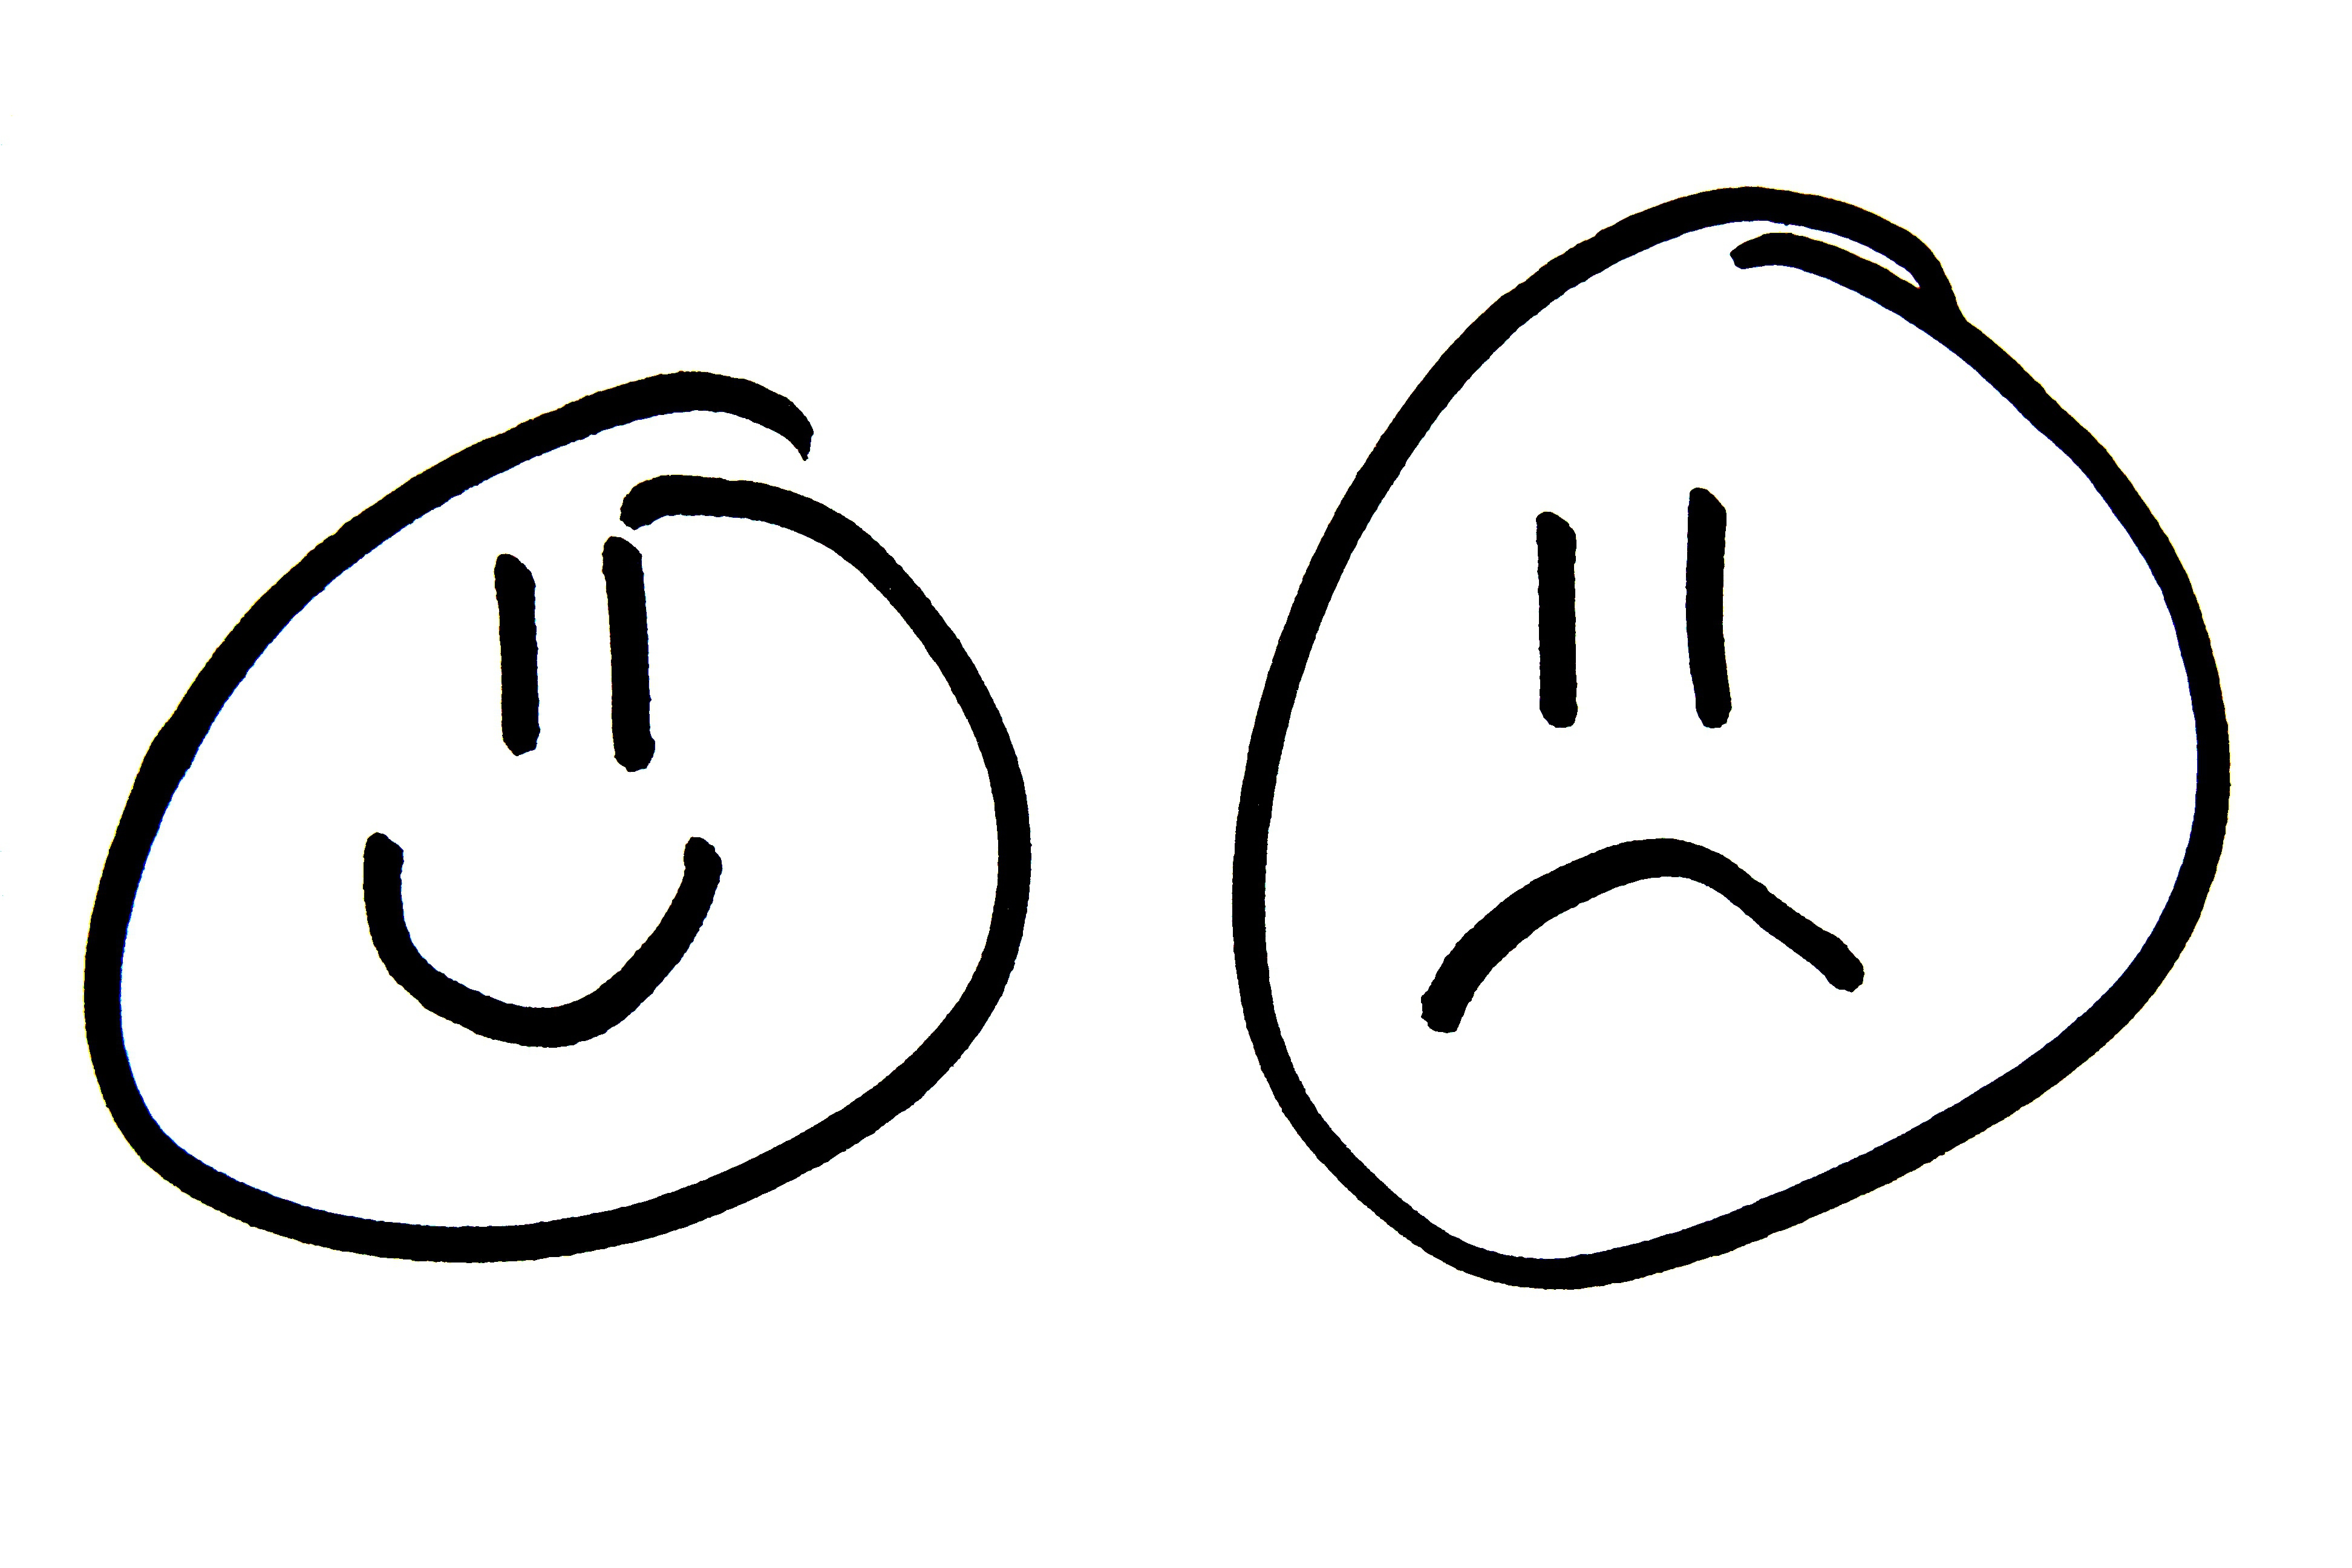 3888x2592 Mood Clipart Black And White